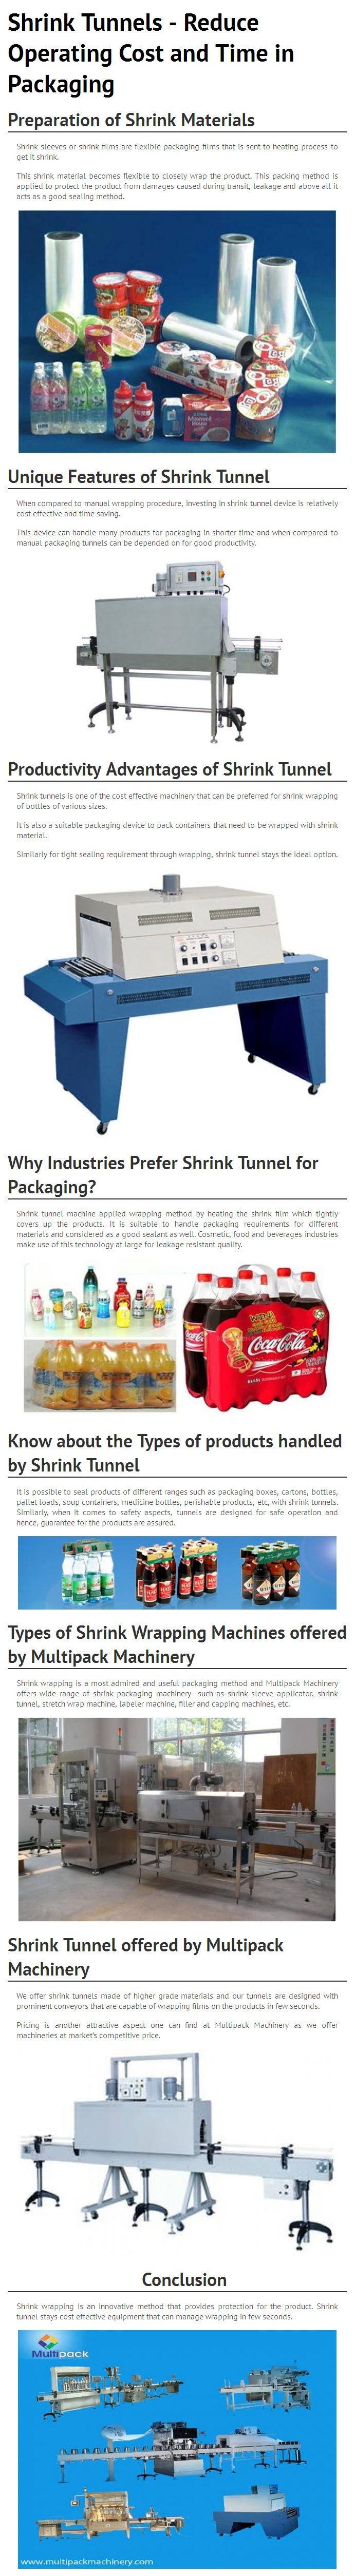 Learn about the packaging mechanism of shrink tunnels. Find out more interesting facts about how shrink tunnels reduce operating a cost and save time for packaging requirements.  It is always advisable to buy packaging machinery from manufacturers who can consider customization requests of industries. http://www.multipackmachinery.com/shrink-tunnels/ is a leading manufacturer and supplier of secondary packaging machines and we are keen to provide packaging equipments as per the requirements.